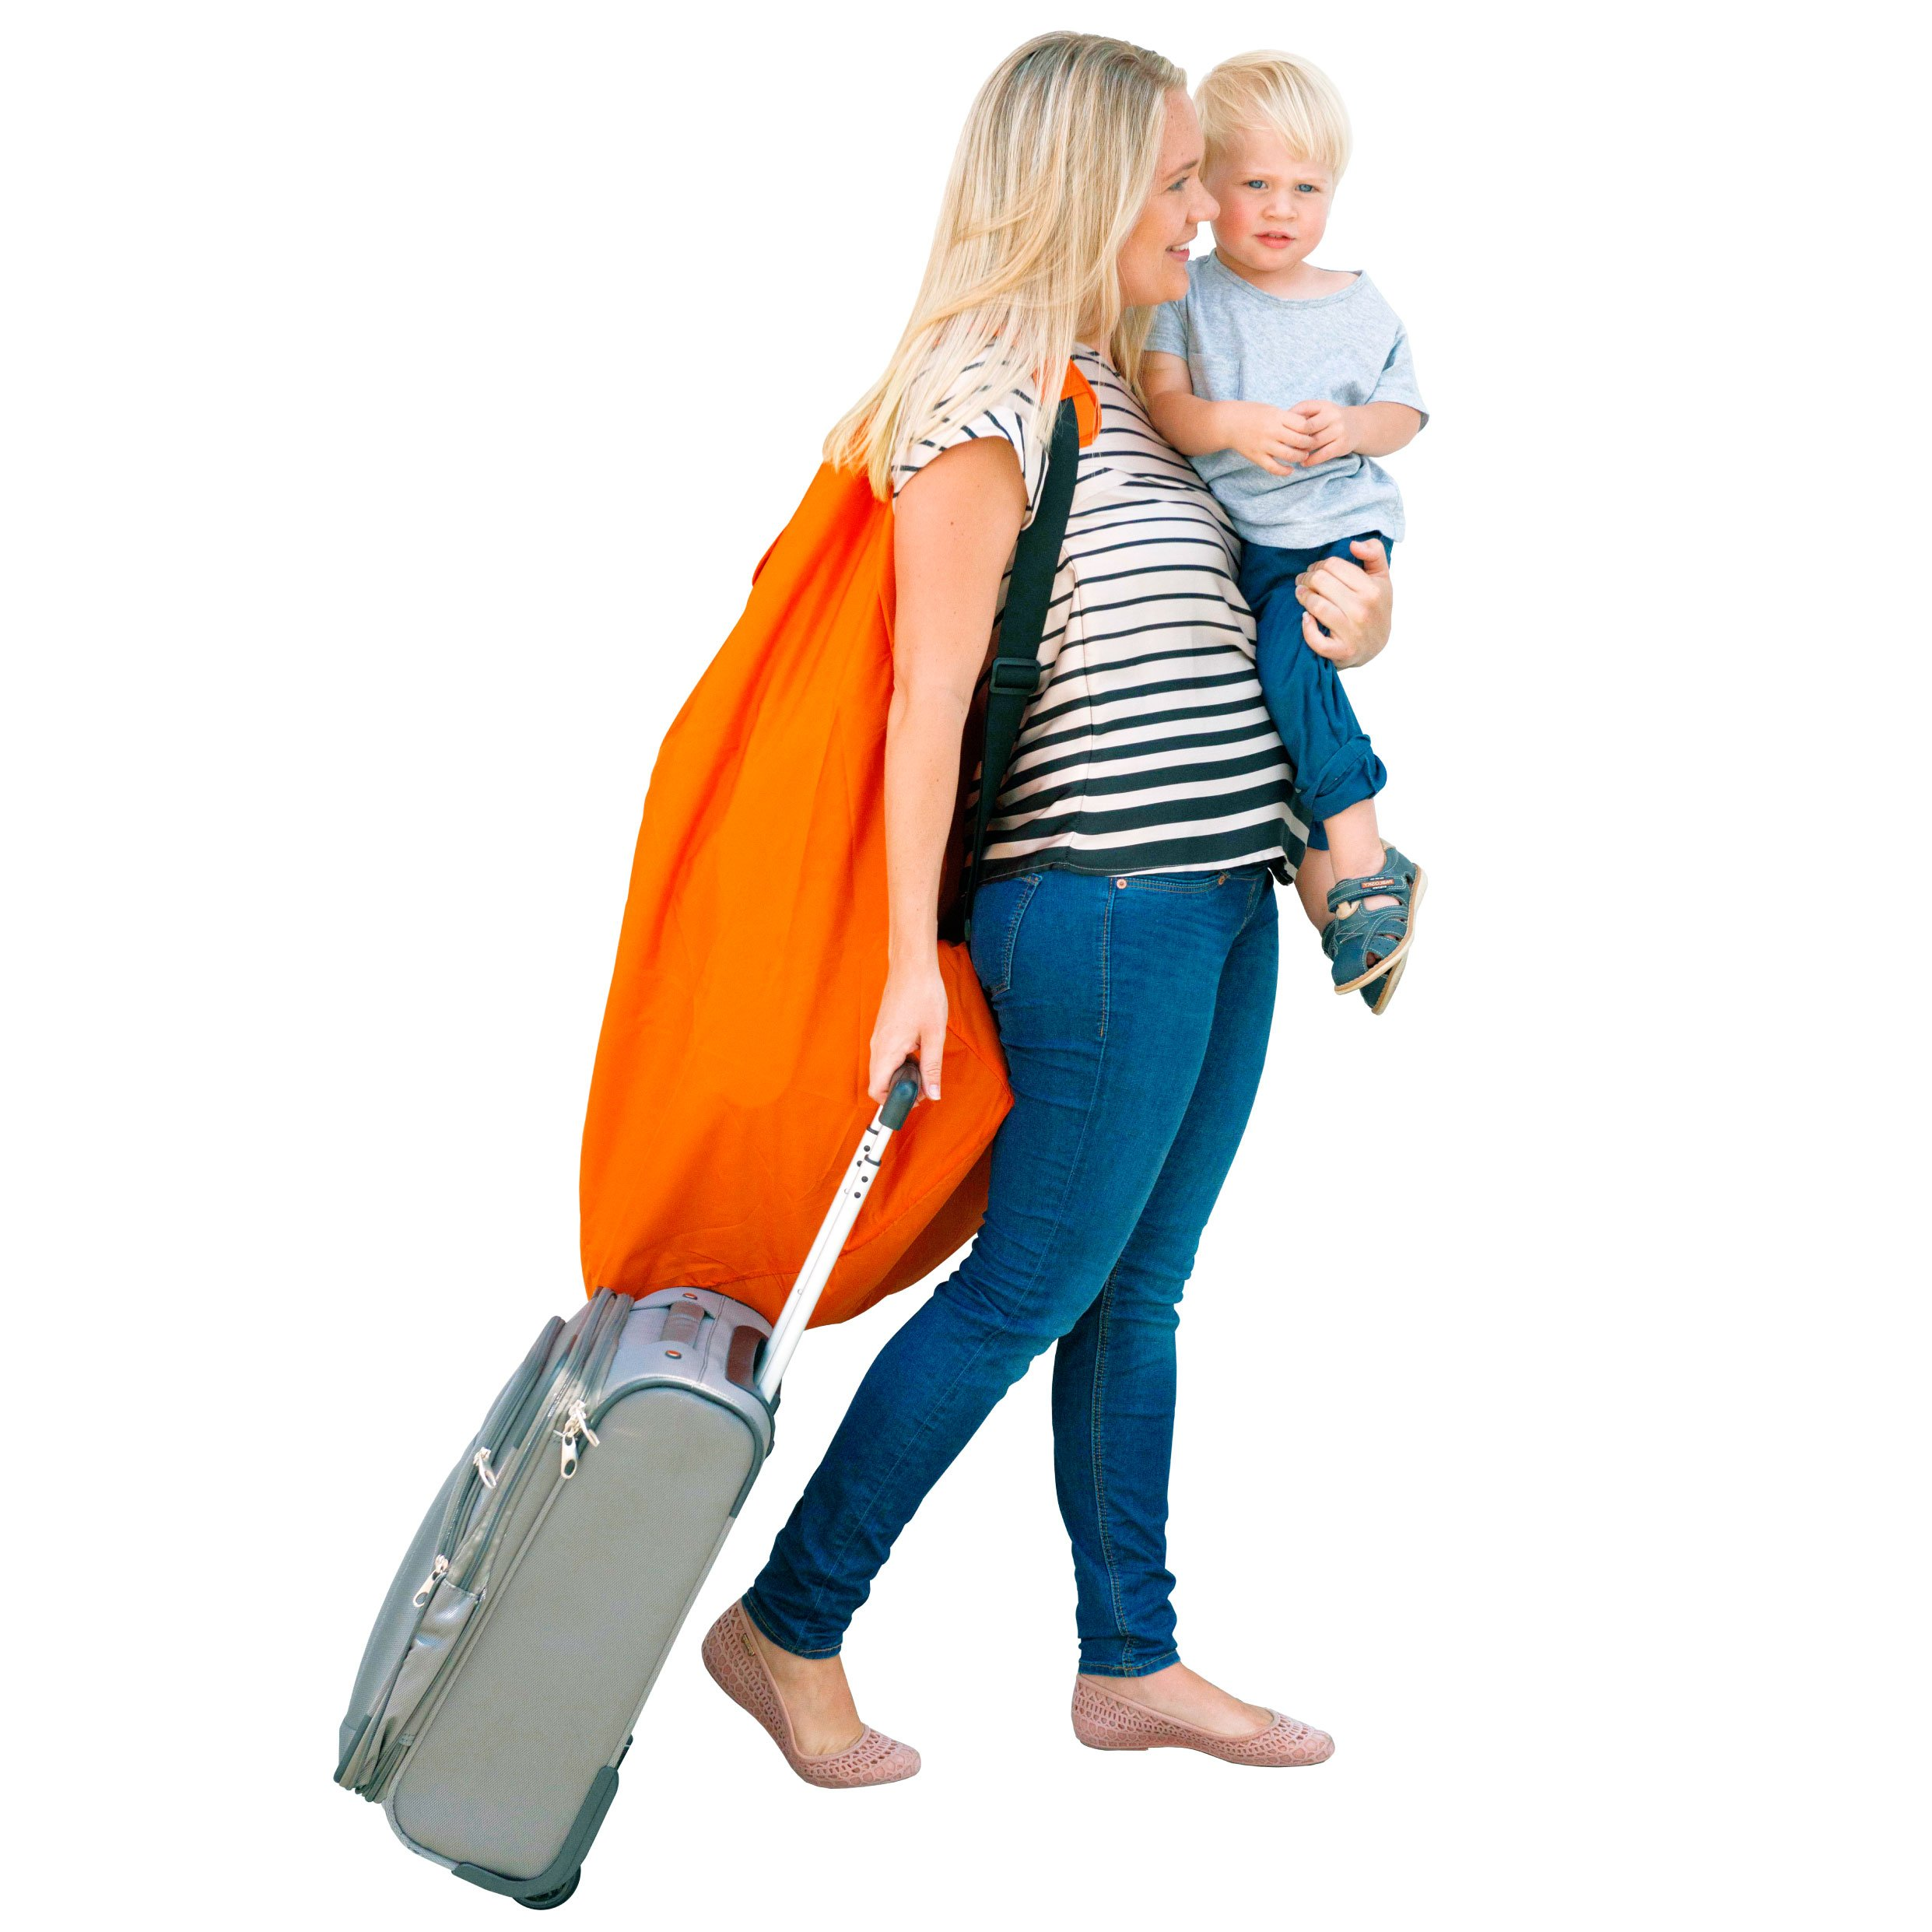 Car Seat Travel Bag -Make Travel Easier & Save Money. NEW IMPROVED Carseat Carrier for Airport - Protect your Child's CarSeats & Stroller from Germs & Damage. Easy Carry Padded Backpack by KangoKids (Image #4)